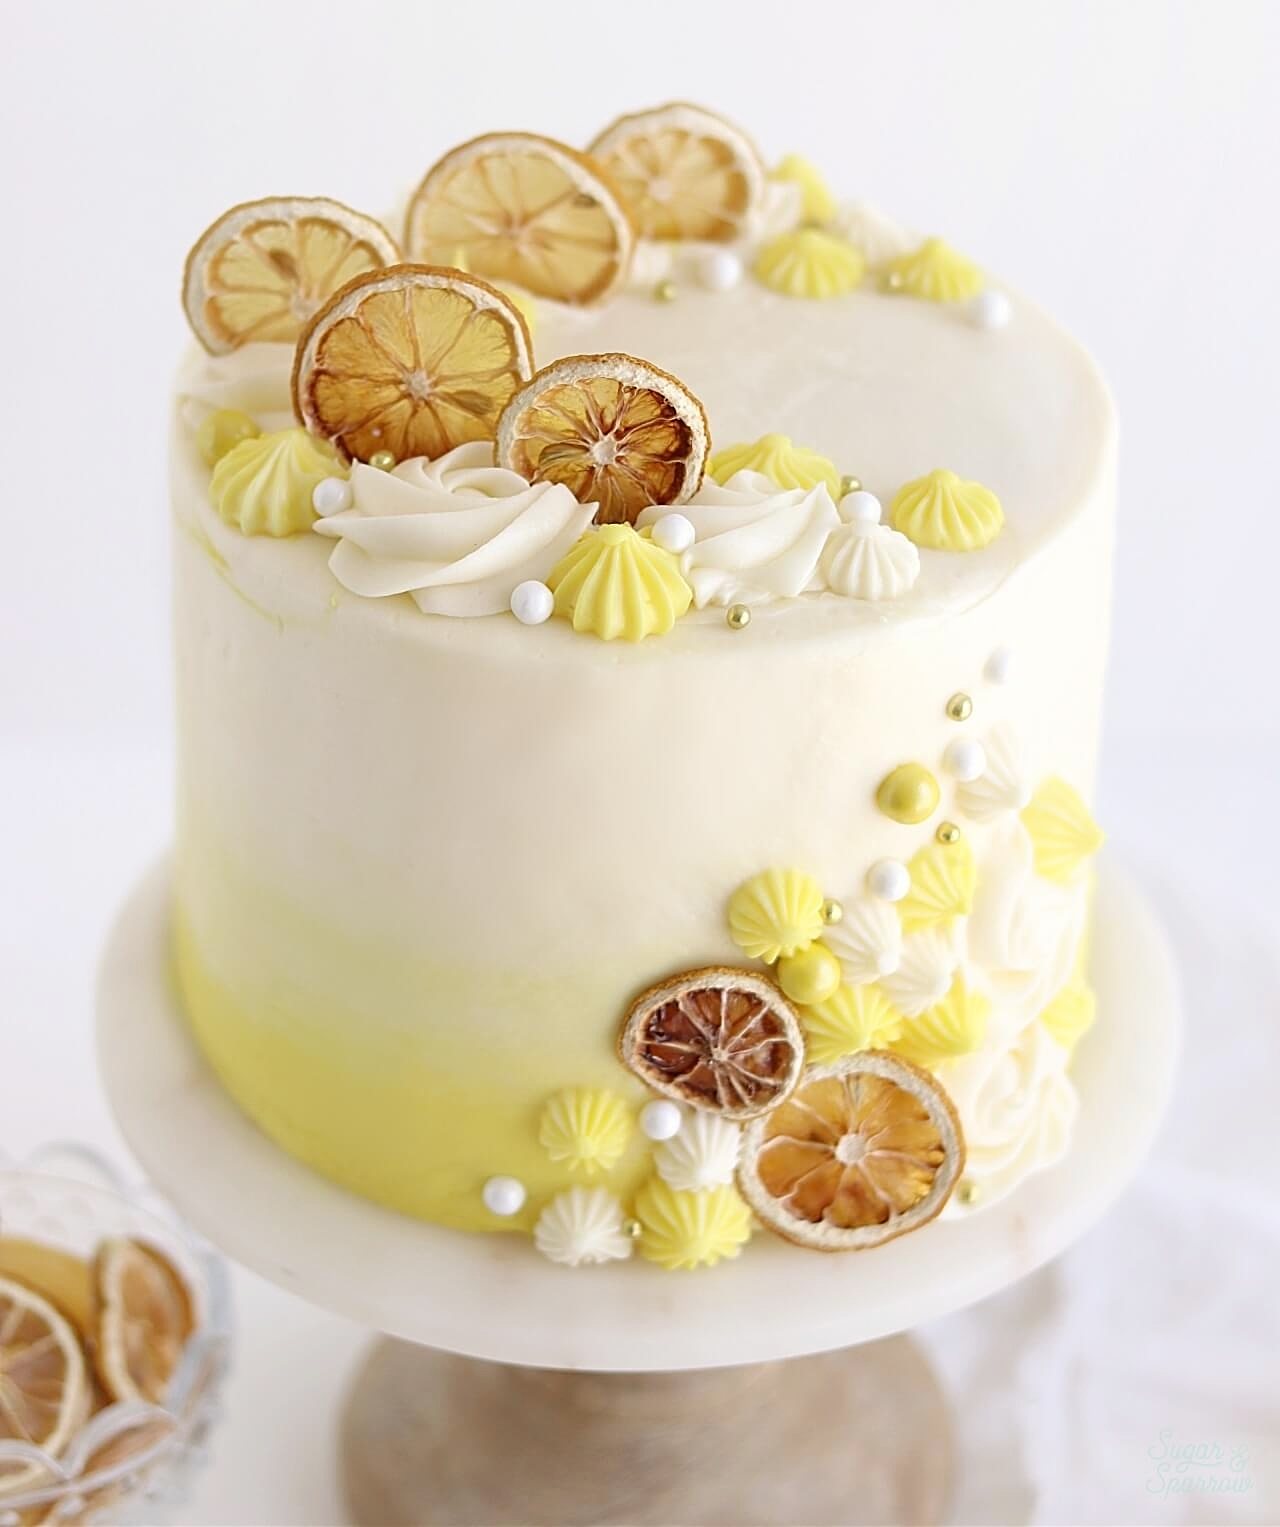 lemon layer cake recipe Archives - Sugar & Sparrow